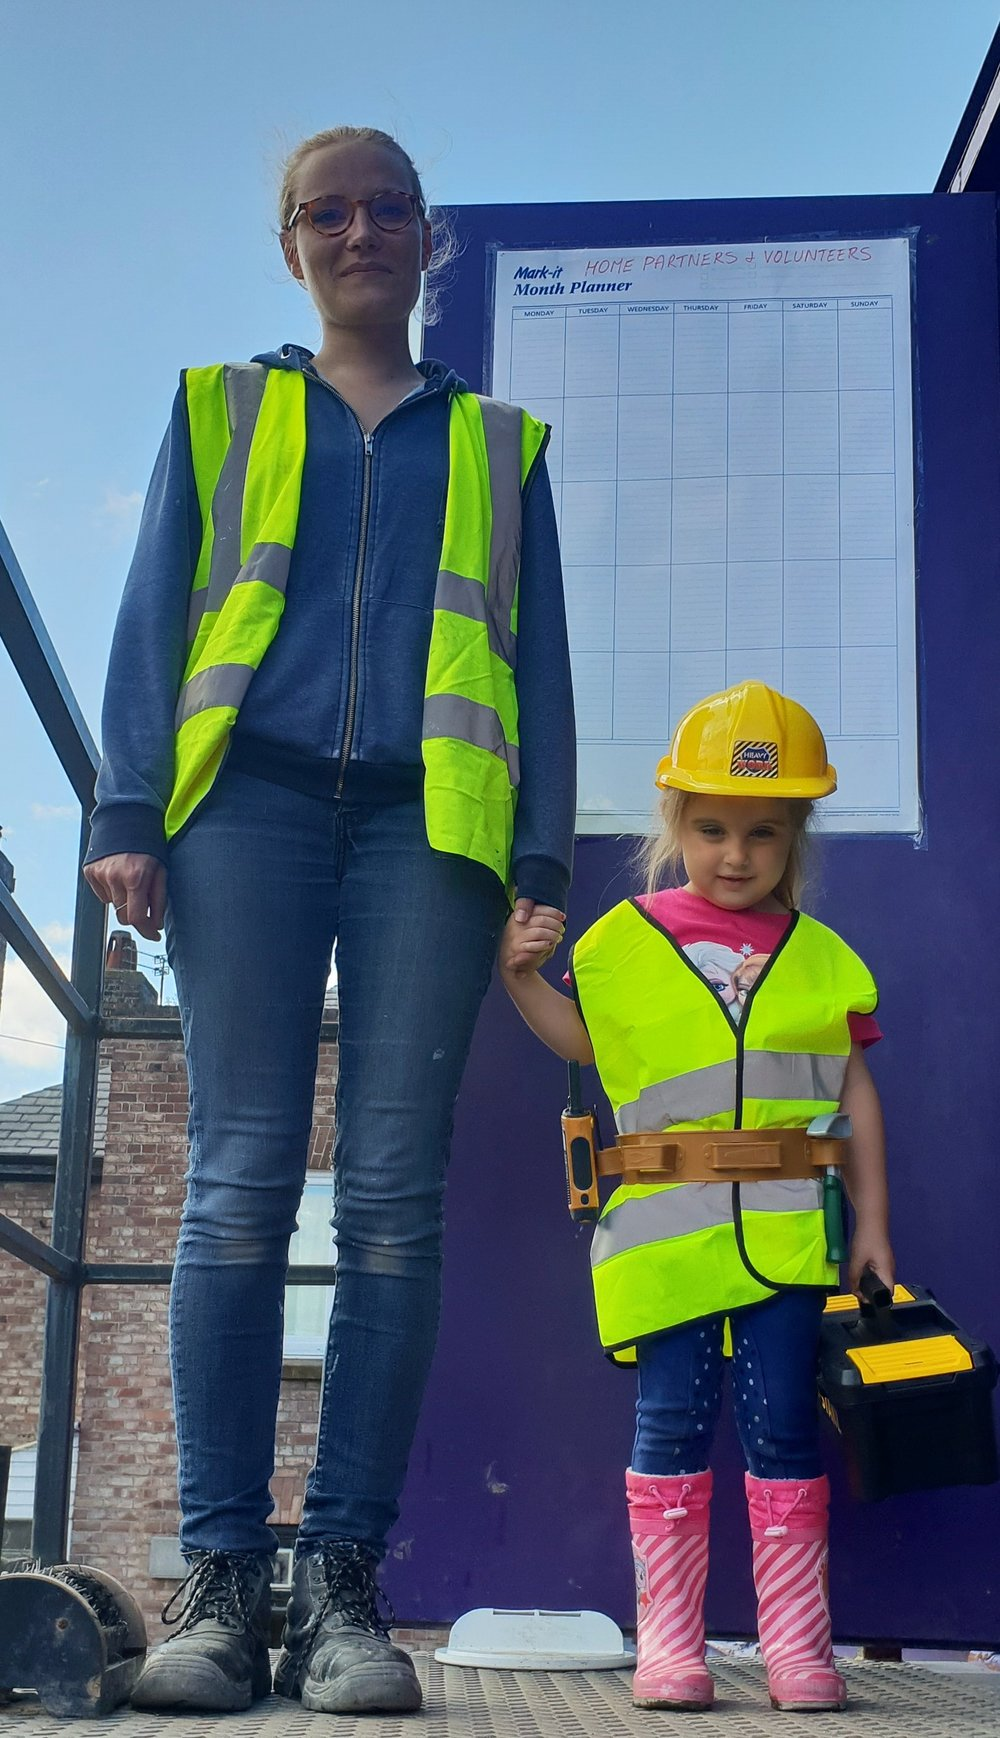 STARTING YOUNG! Léa Bebien on the HPBC site with the Construction Manager's daughter